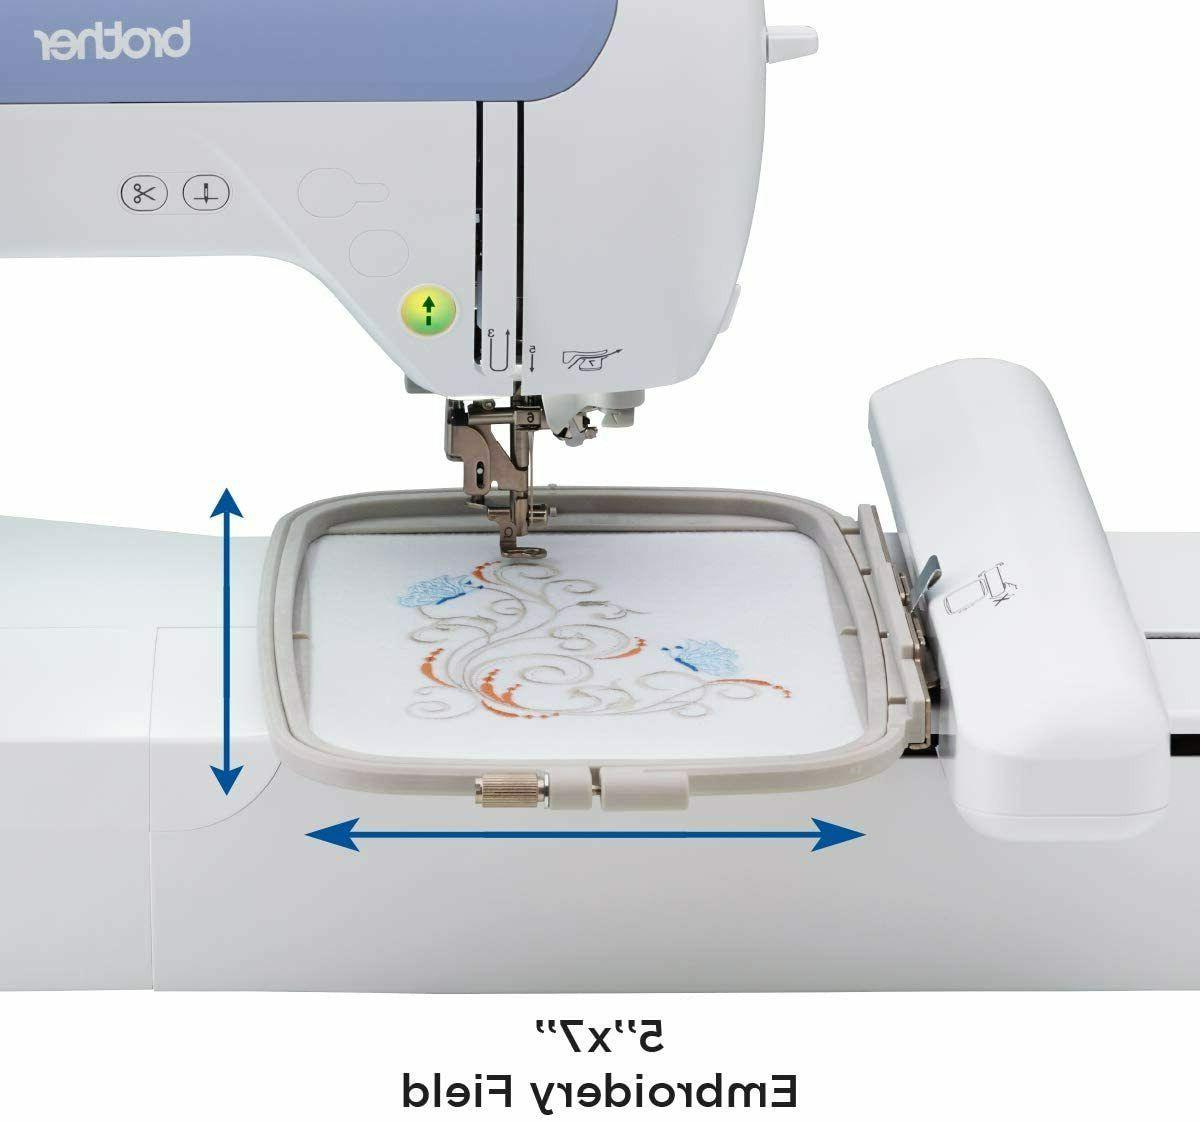 🧵🧵 Embroidery Machine, 138